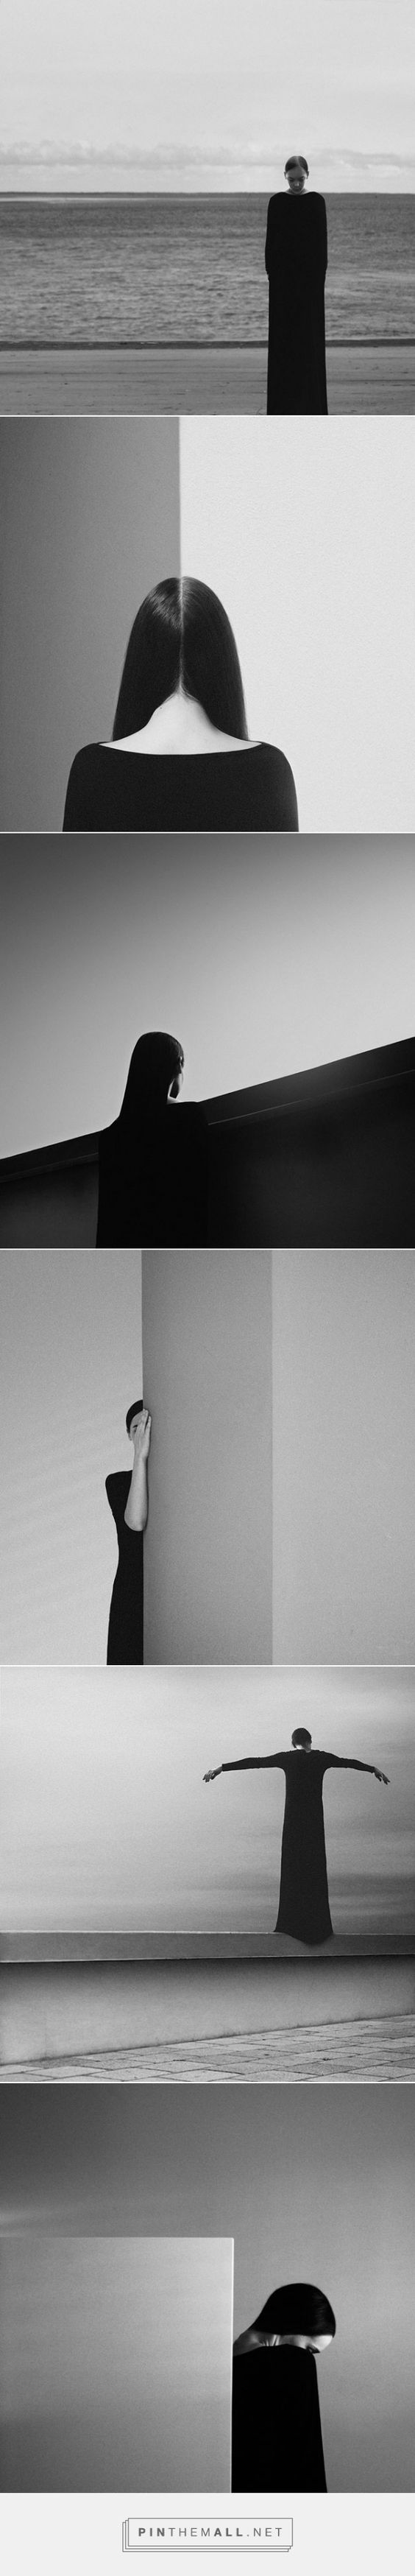 Best PHOTOGRAPHY Images On Pinterest Photography Creative - Minimalistic black white photo series captures energetic movements mid air